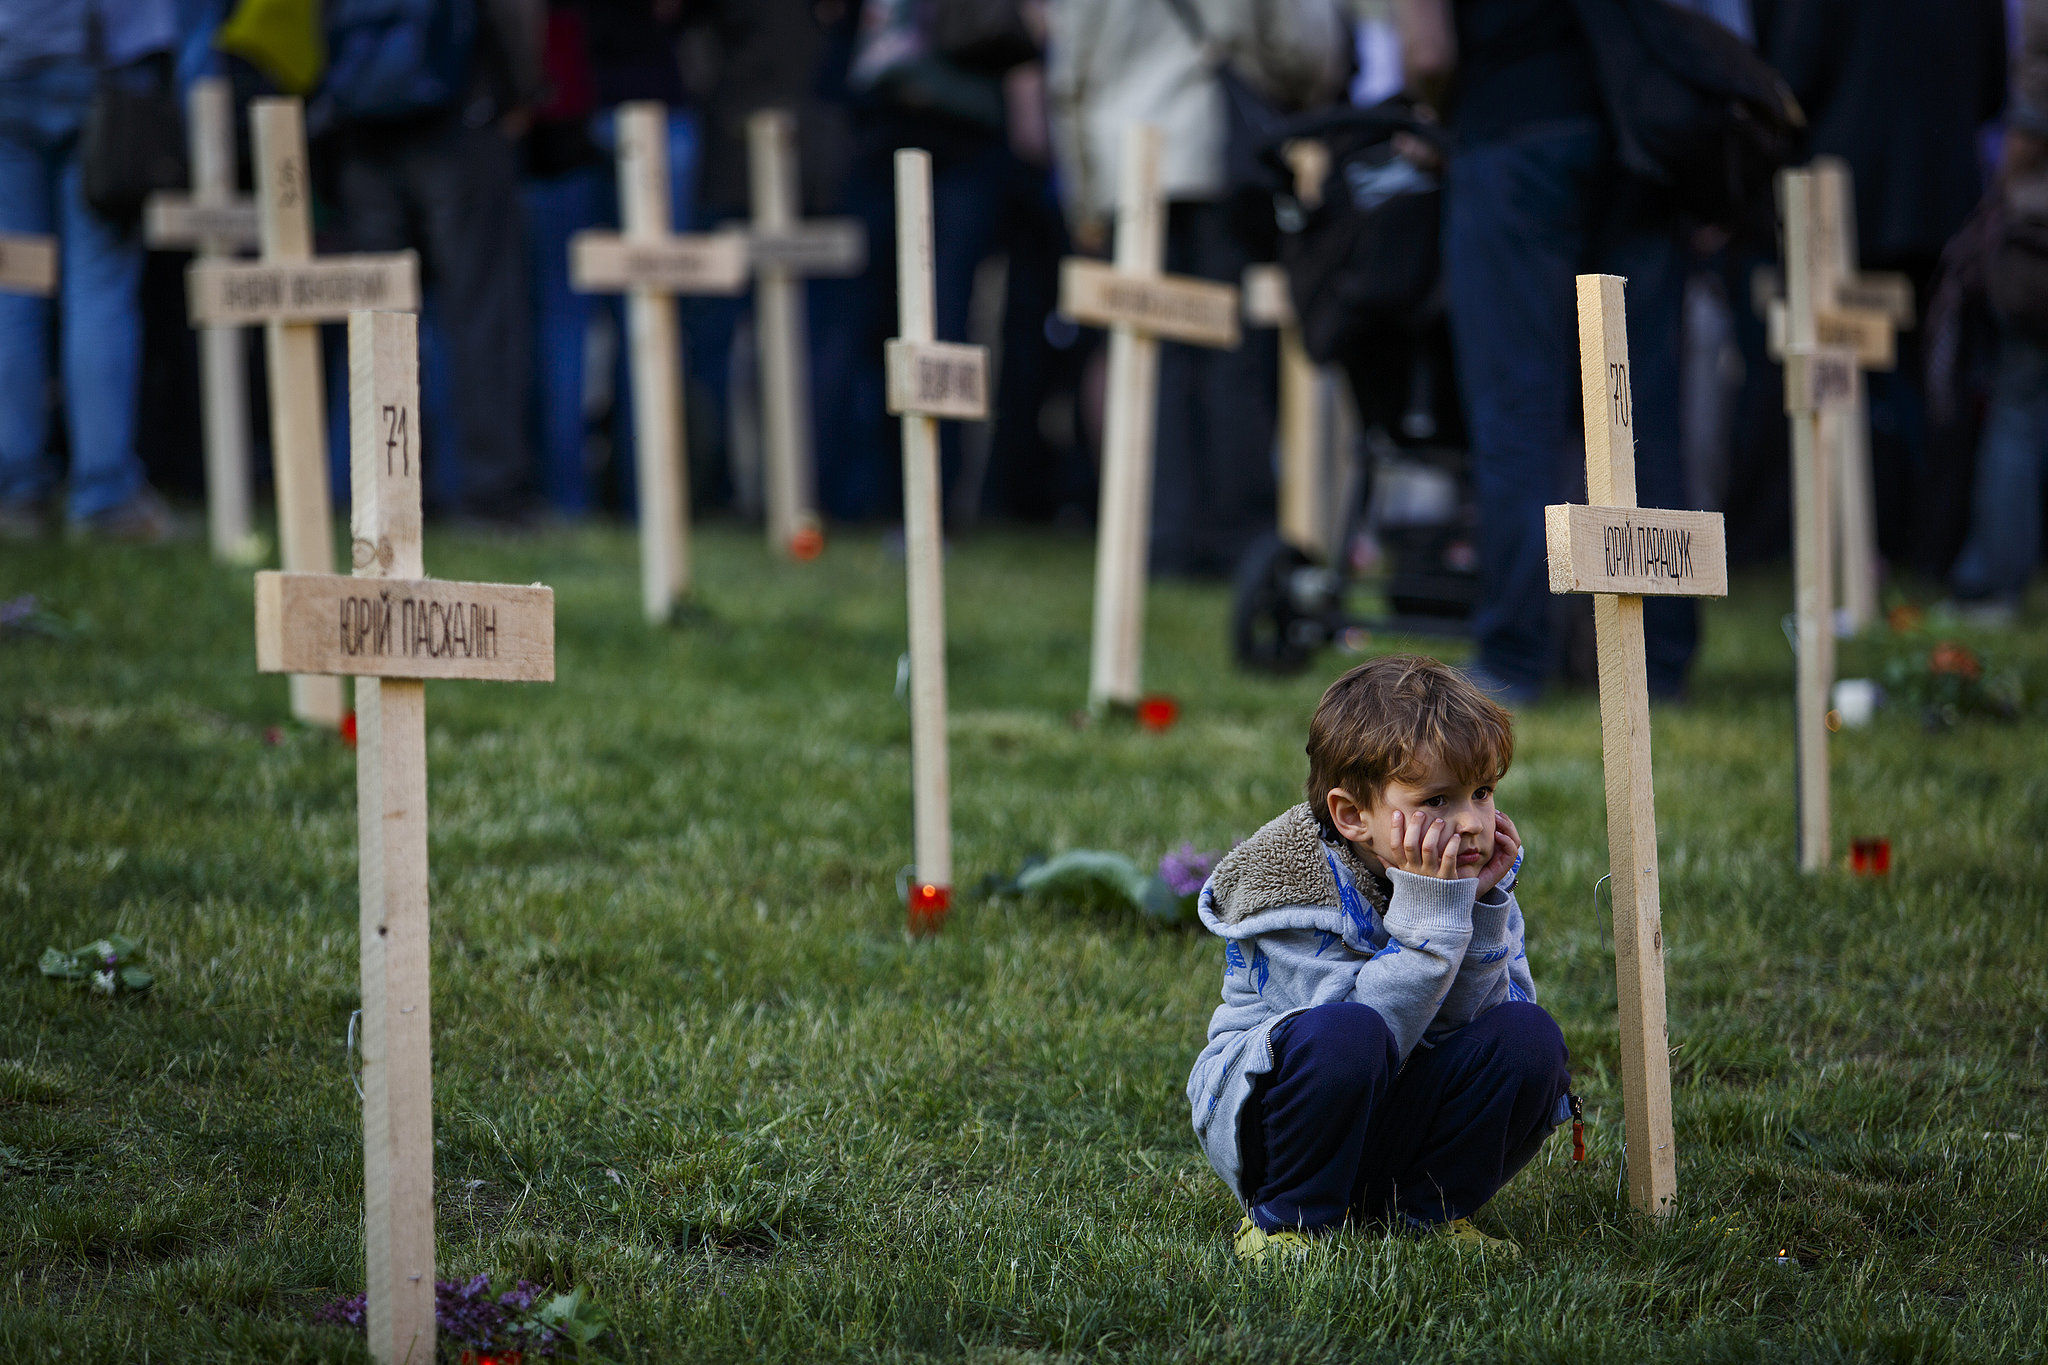 In Prague, the Czech Republic, a young boy sat quietly in a symbolic cemetery for those lost in Ukraine's protests.